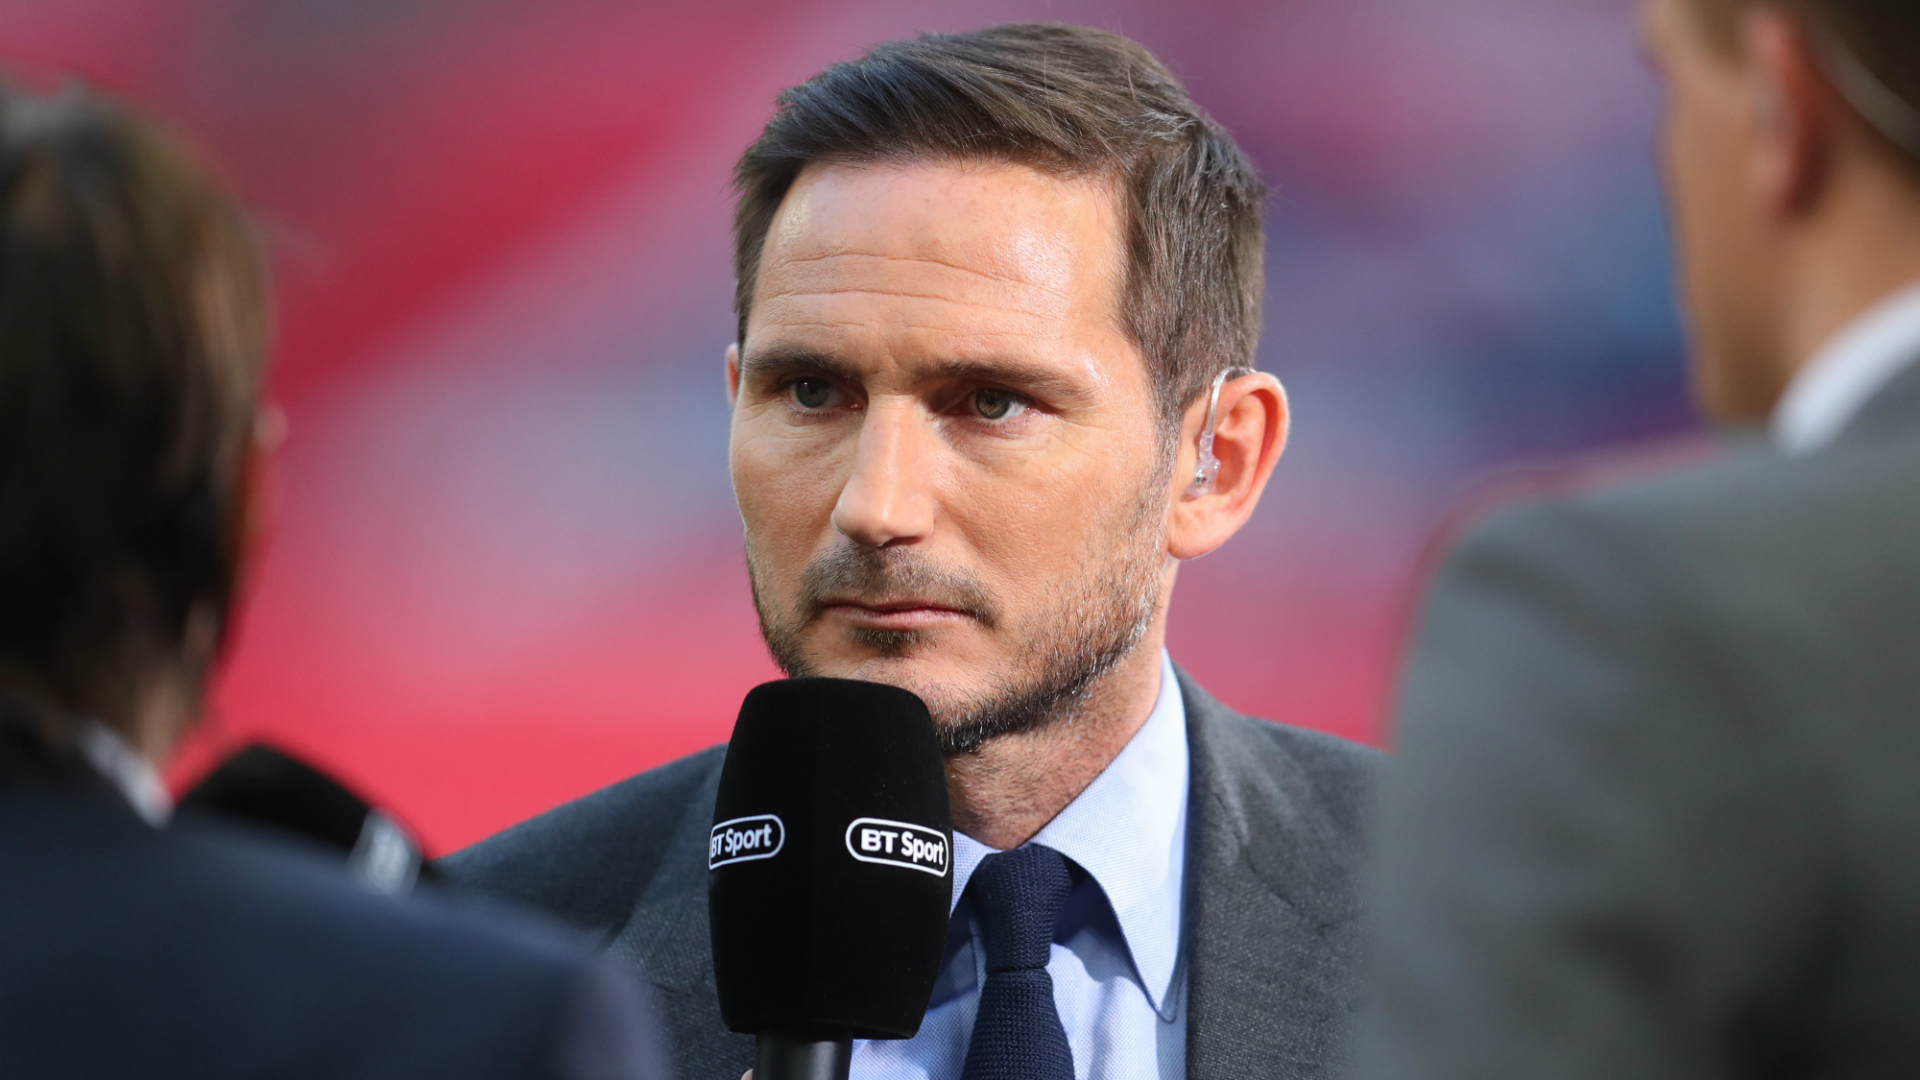 Derby County: Frank Lampard in talks with Championship club over manager role